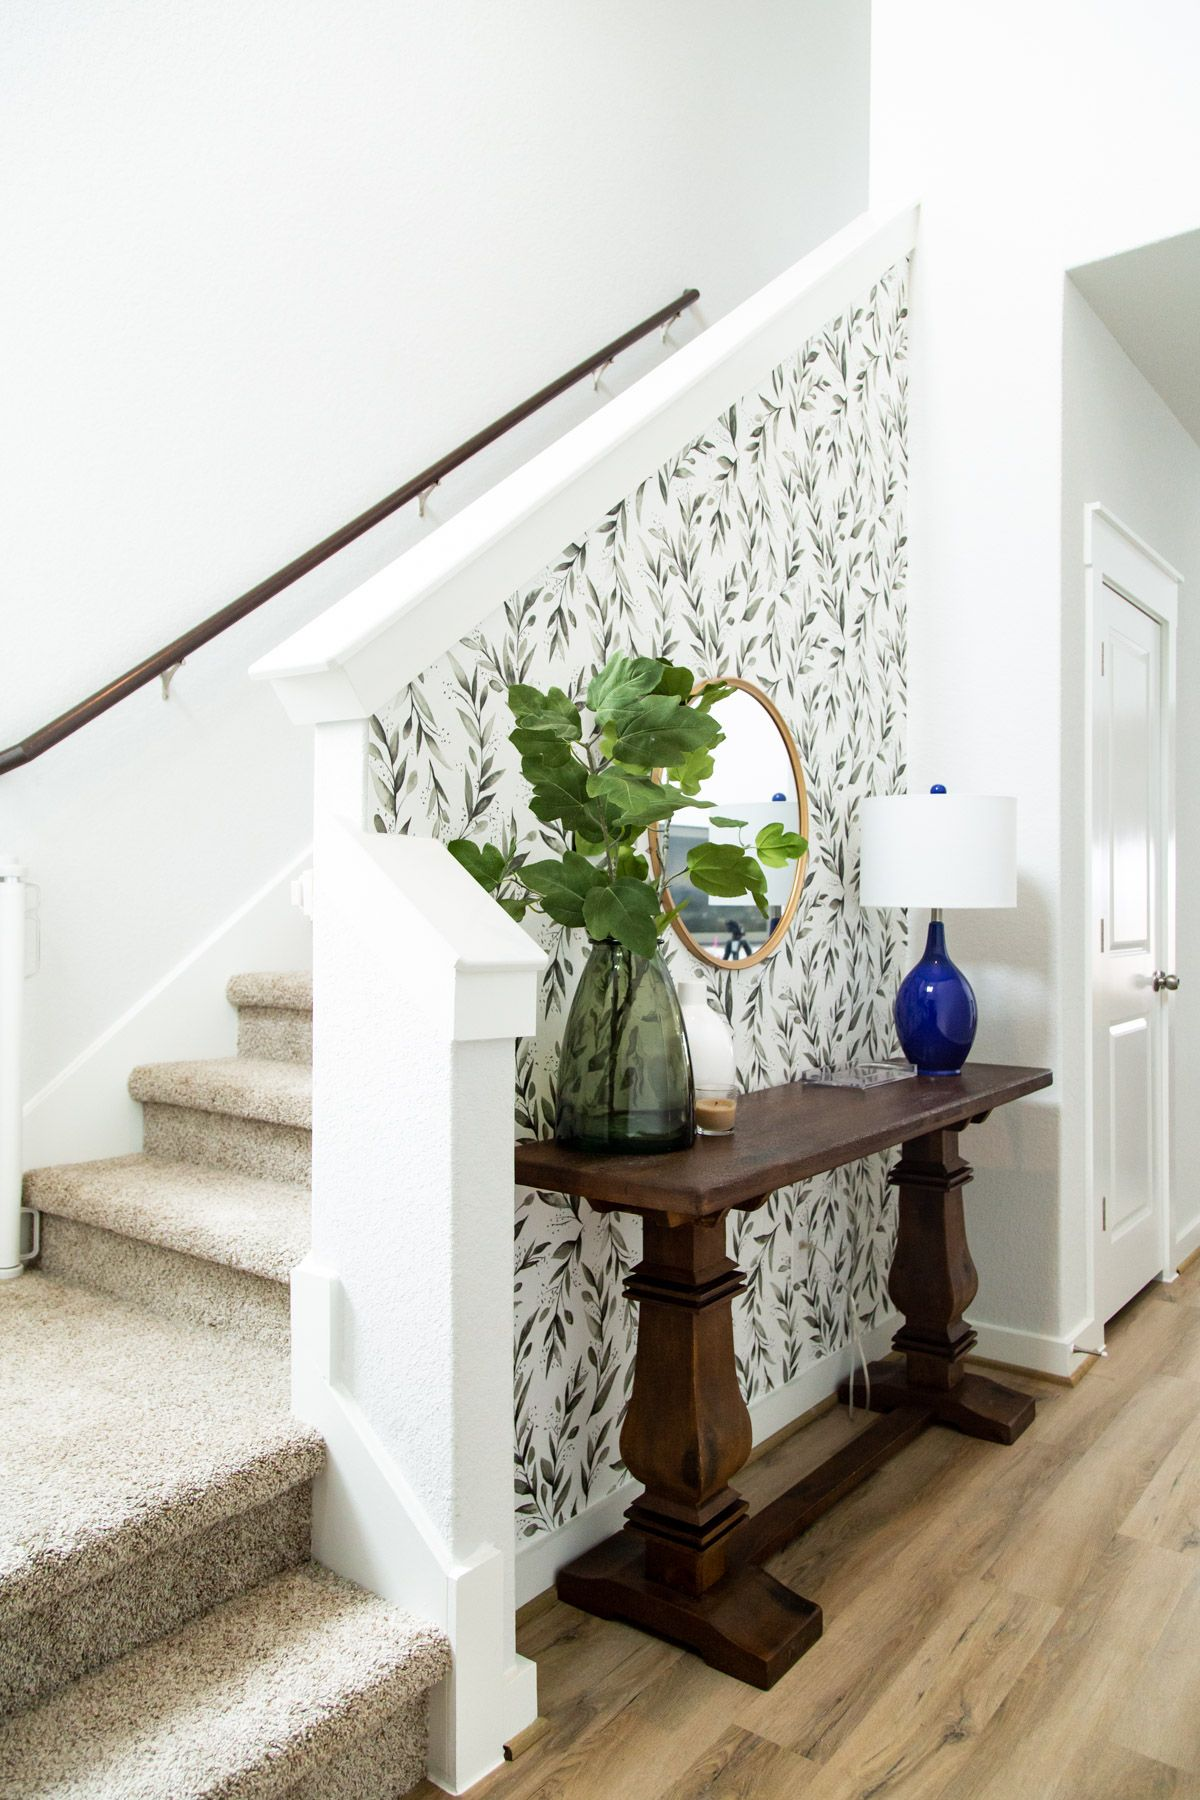 This Gorgeous Diy Entryway Makeover Was Done Using Only Items Found At Homedepot Com Decor Tons Of Entryway Decor Small Small Entry Decor Stair Landing Decor